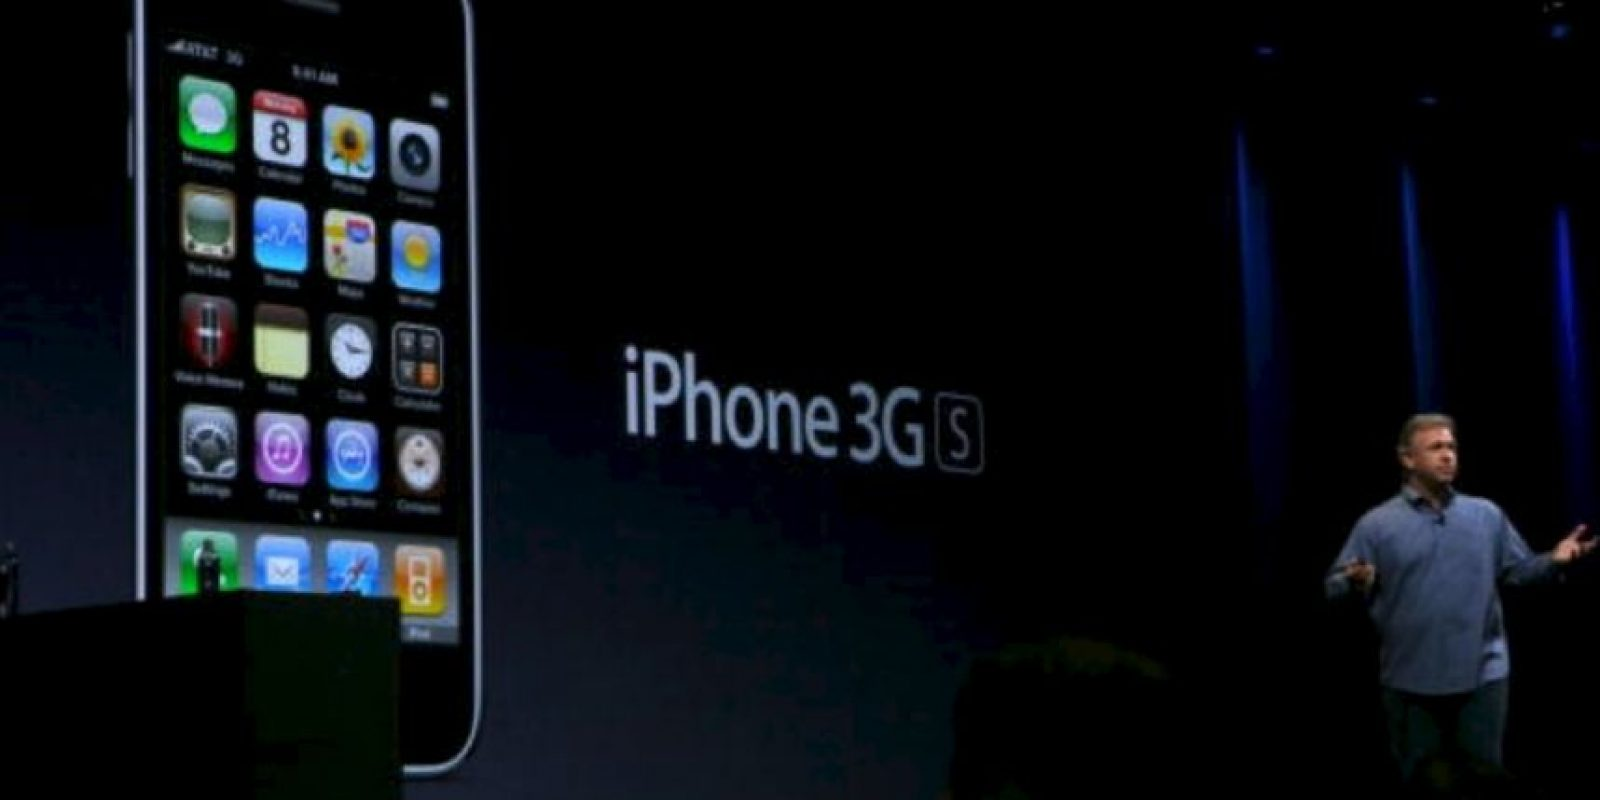 Phil Schiller, vicepresidente de Apple, presentó el iPhone 3GS el 8 de junio de 2009 en la WWDC Foto: Getty Images